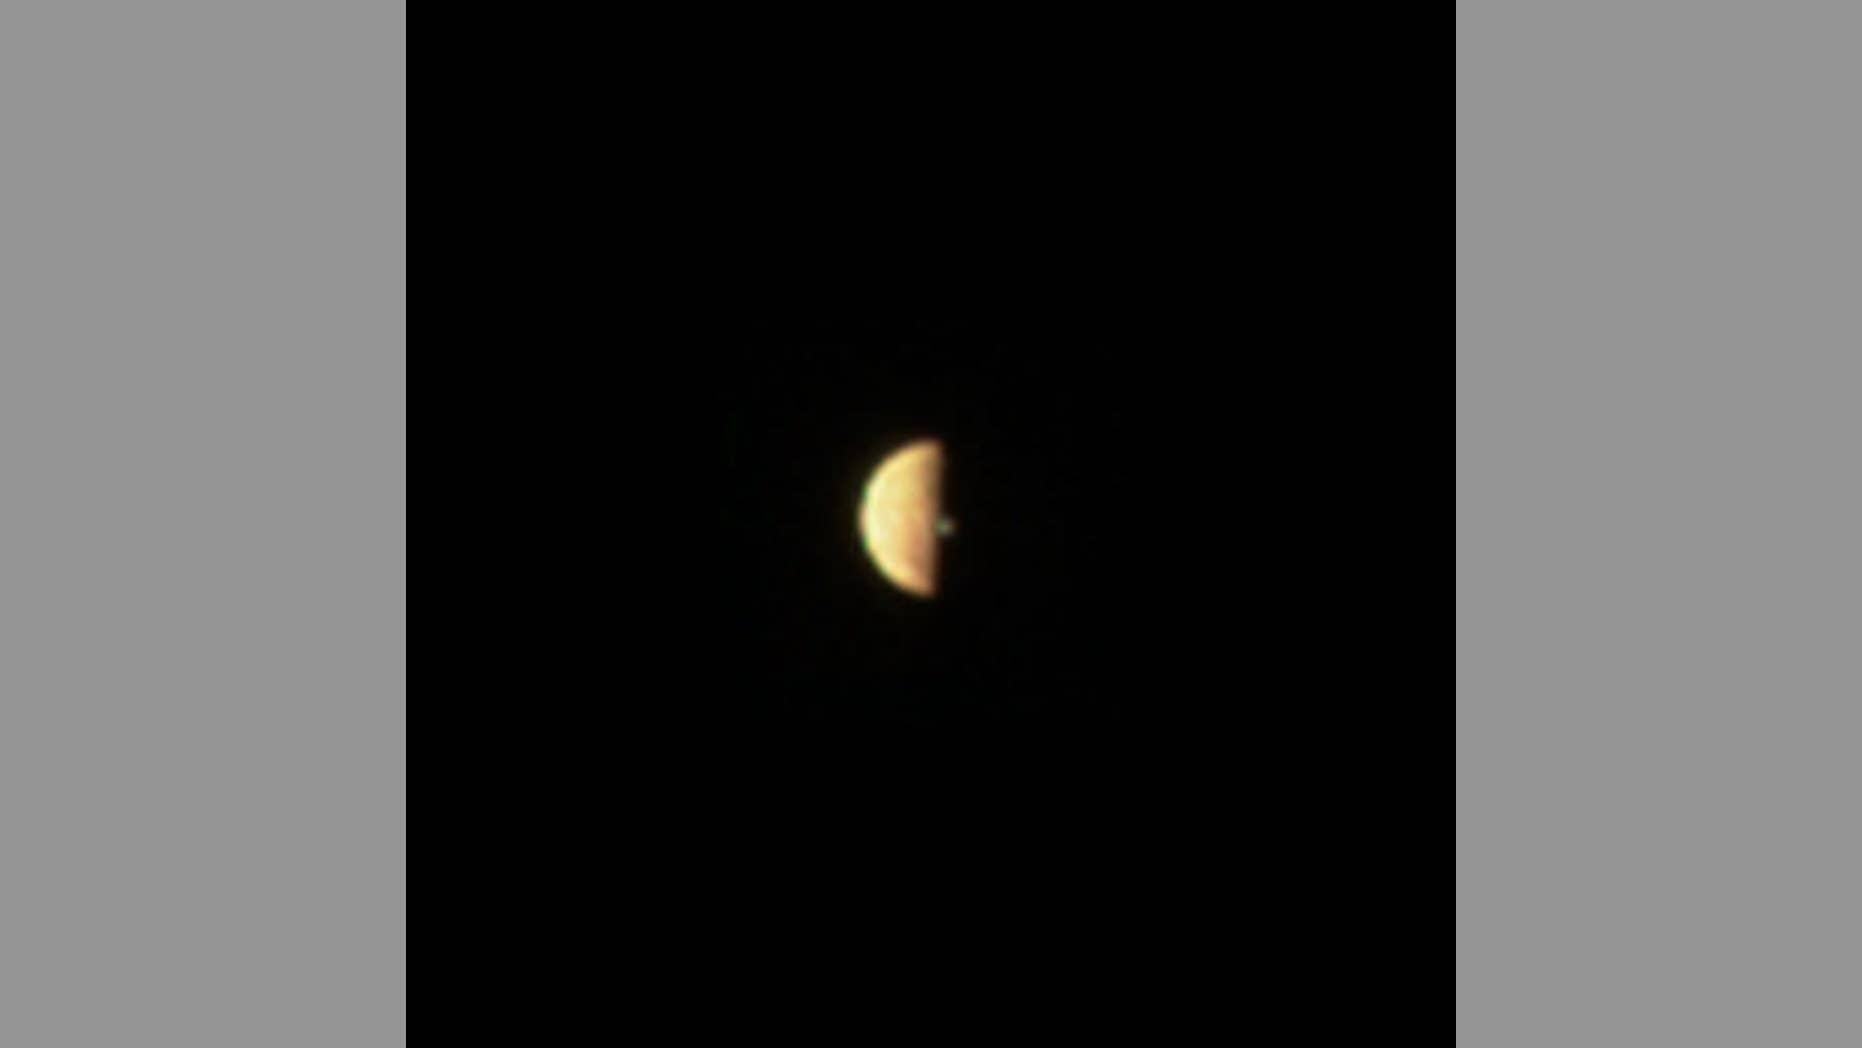 Juno's visible light camera, JunoCam, spotted a volcanic plume right along Io's terminator, the line between the daylight side and the night side. The spacecraft was 186,000 miles (300,000 kilometers) away from the moon.